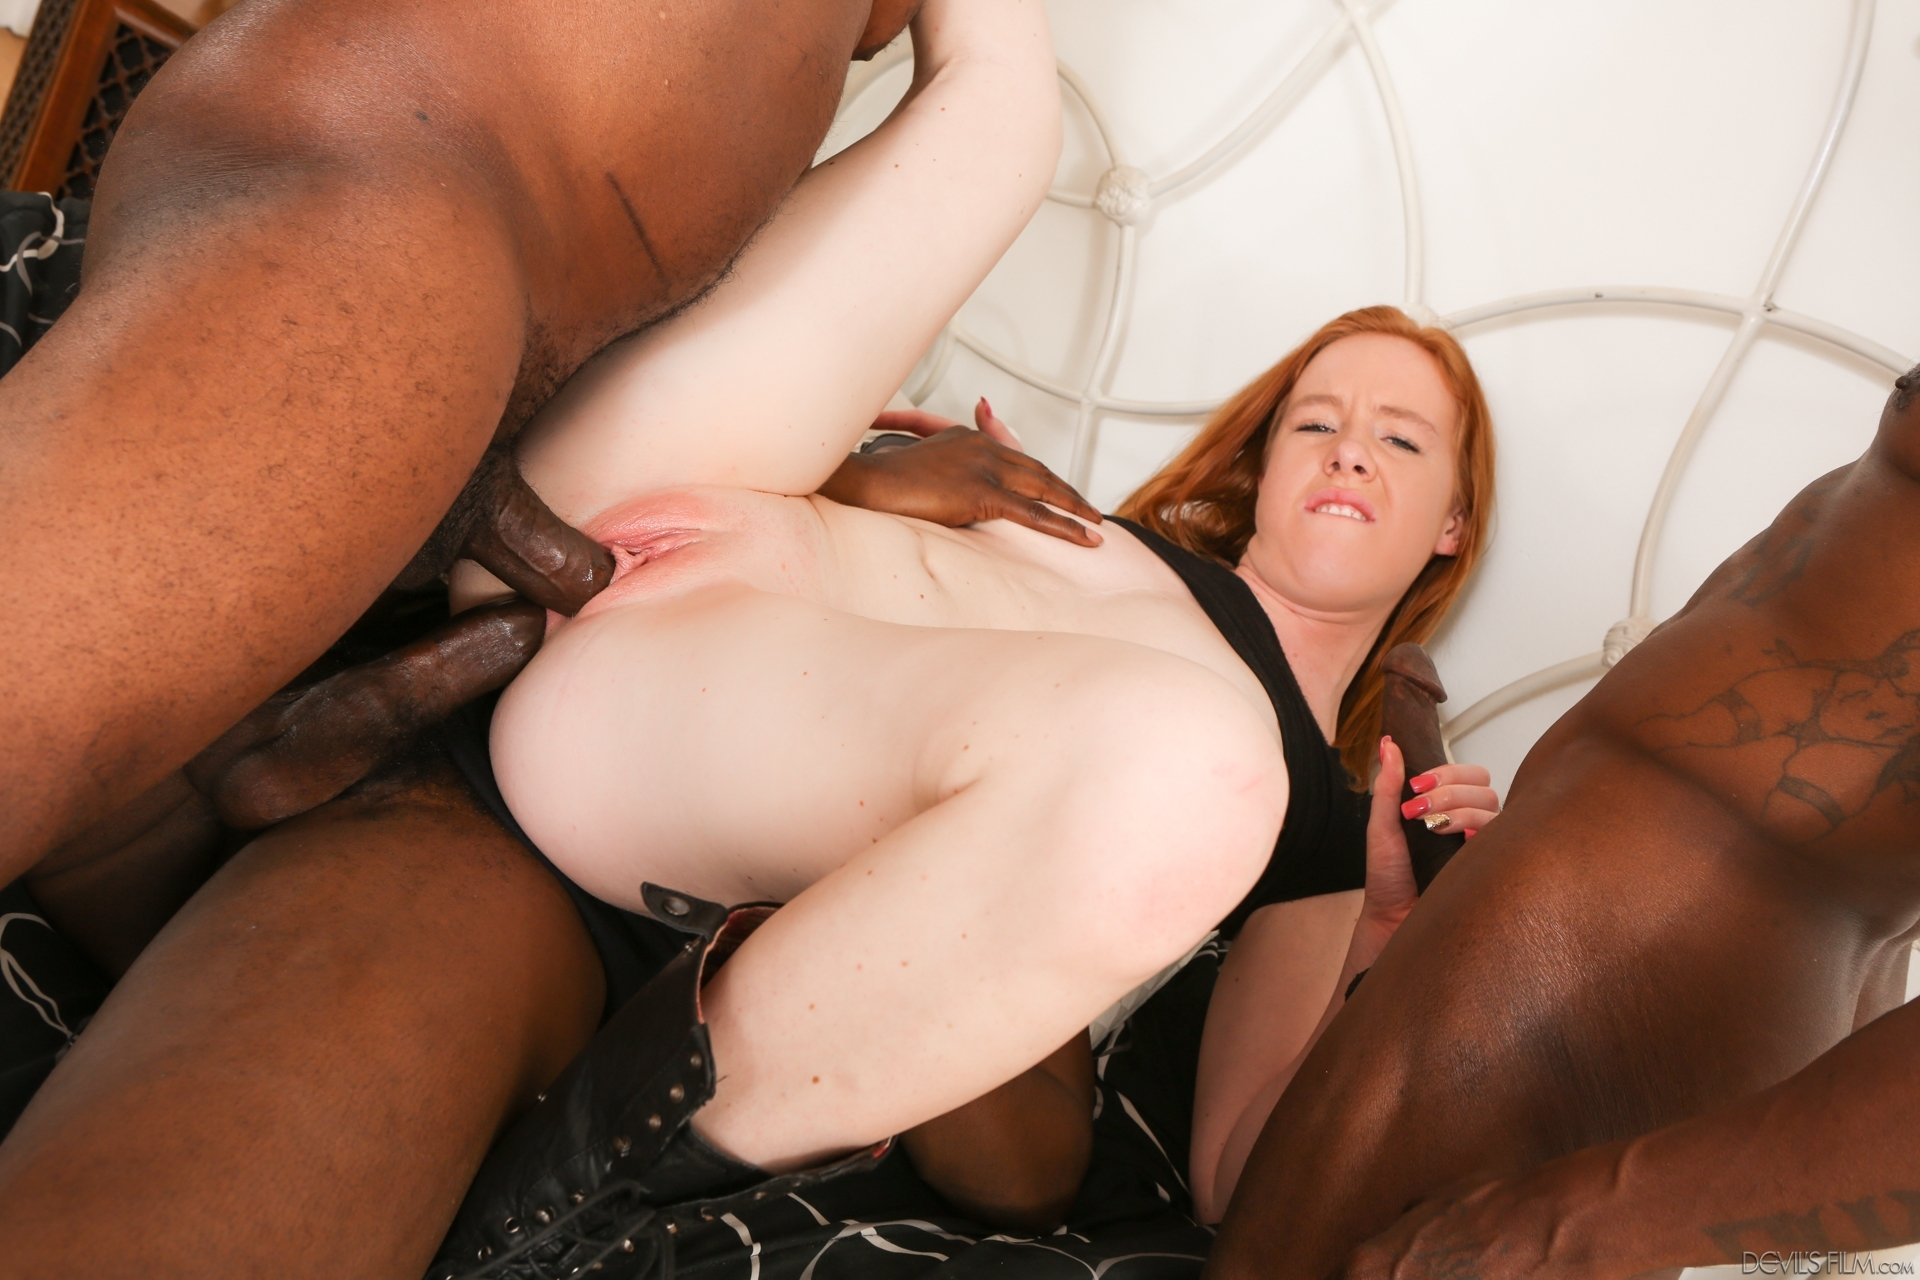 Black stud has hardcore interracial sex with curvy white gal